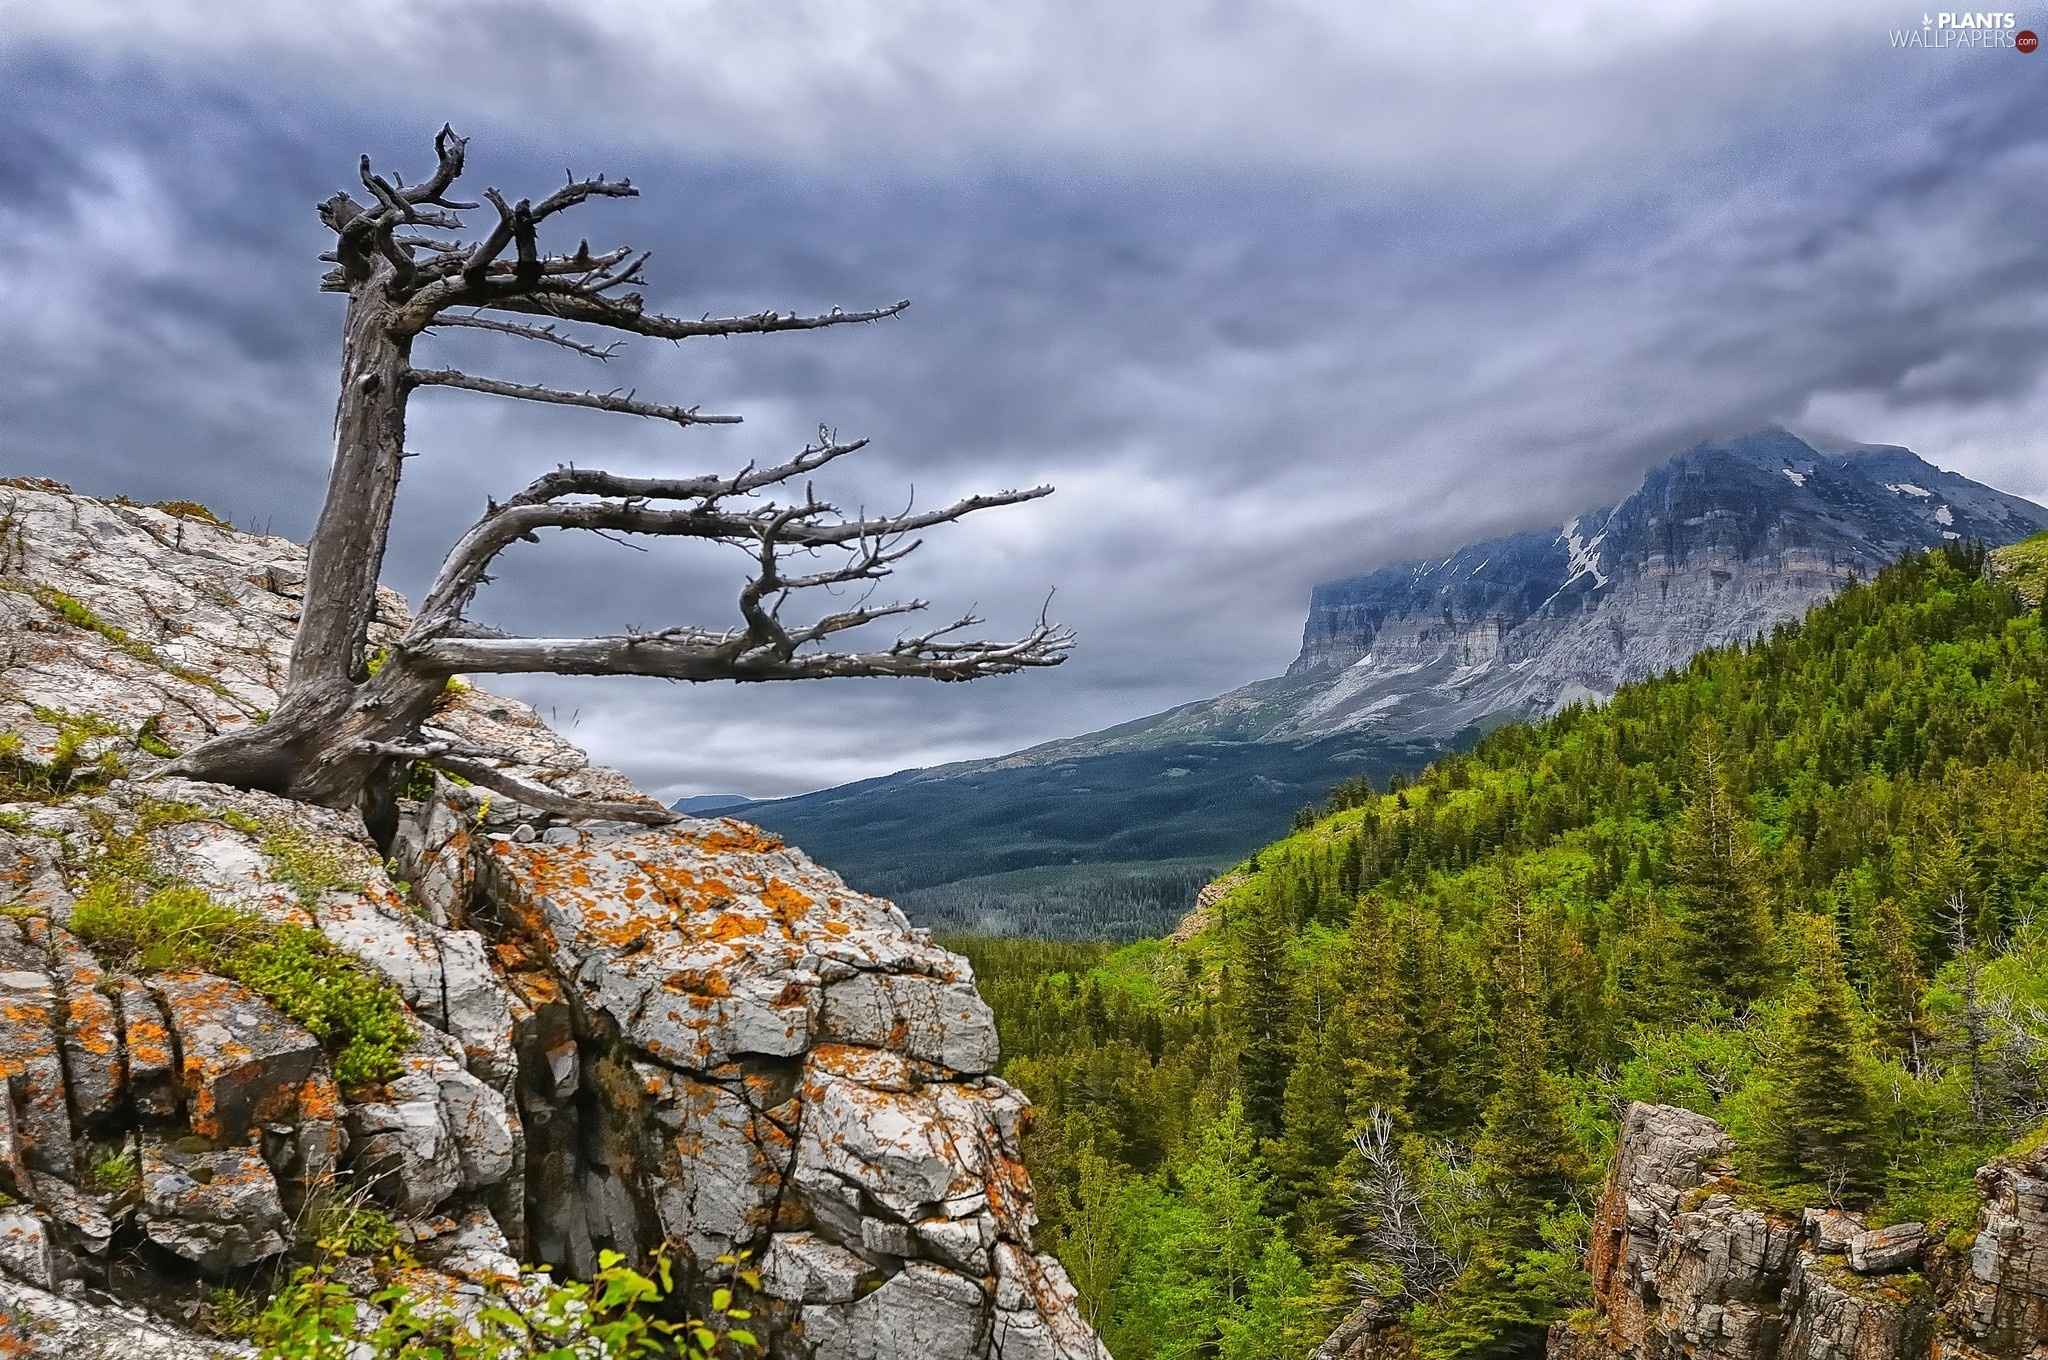 Clouds, woods, dry, rocks, Mountains, Sky, trees